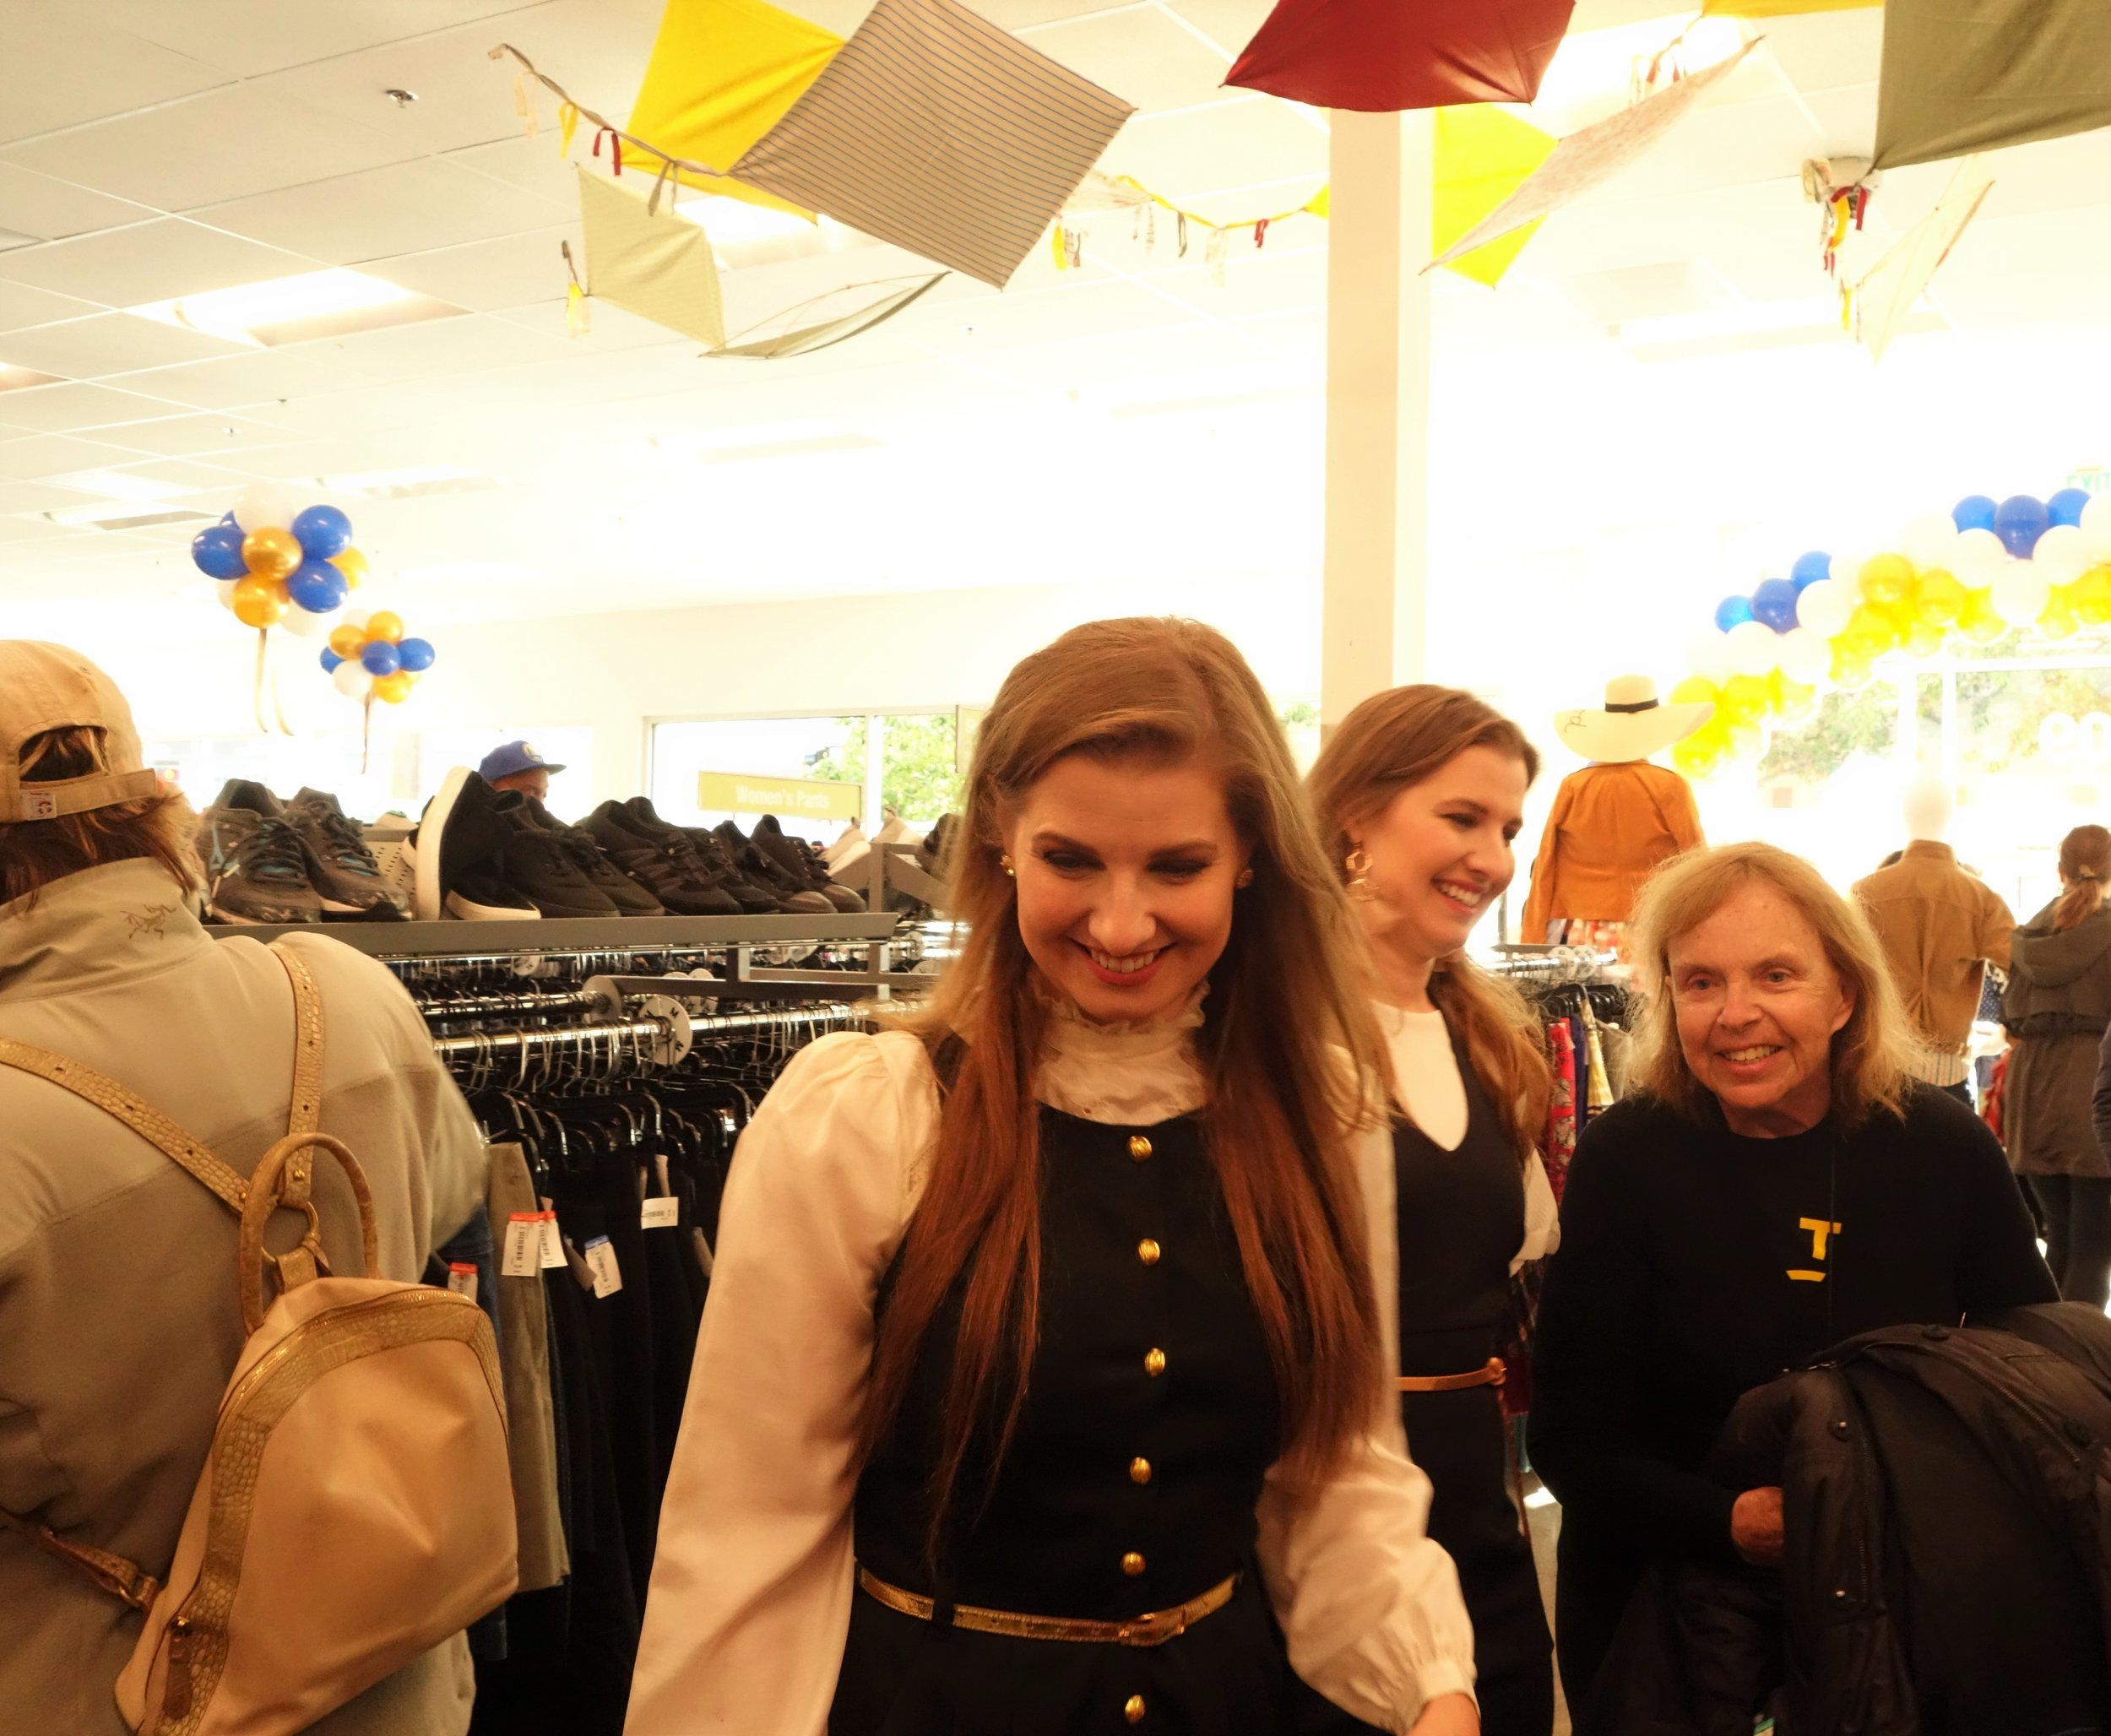 DoubleMinted.com 's  Devon & Brittany  provide styling tips for shoppers